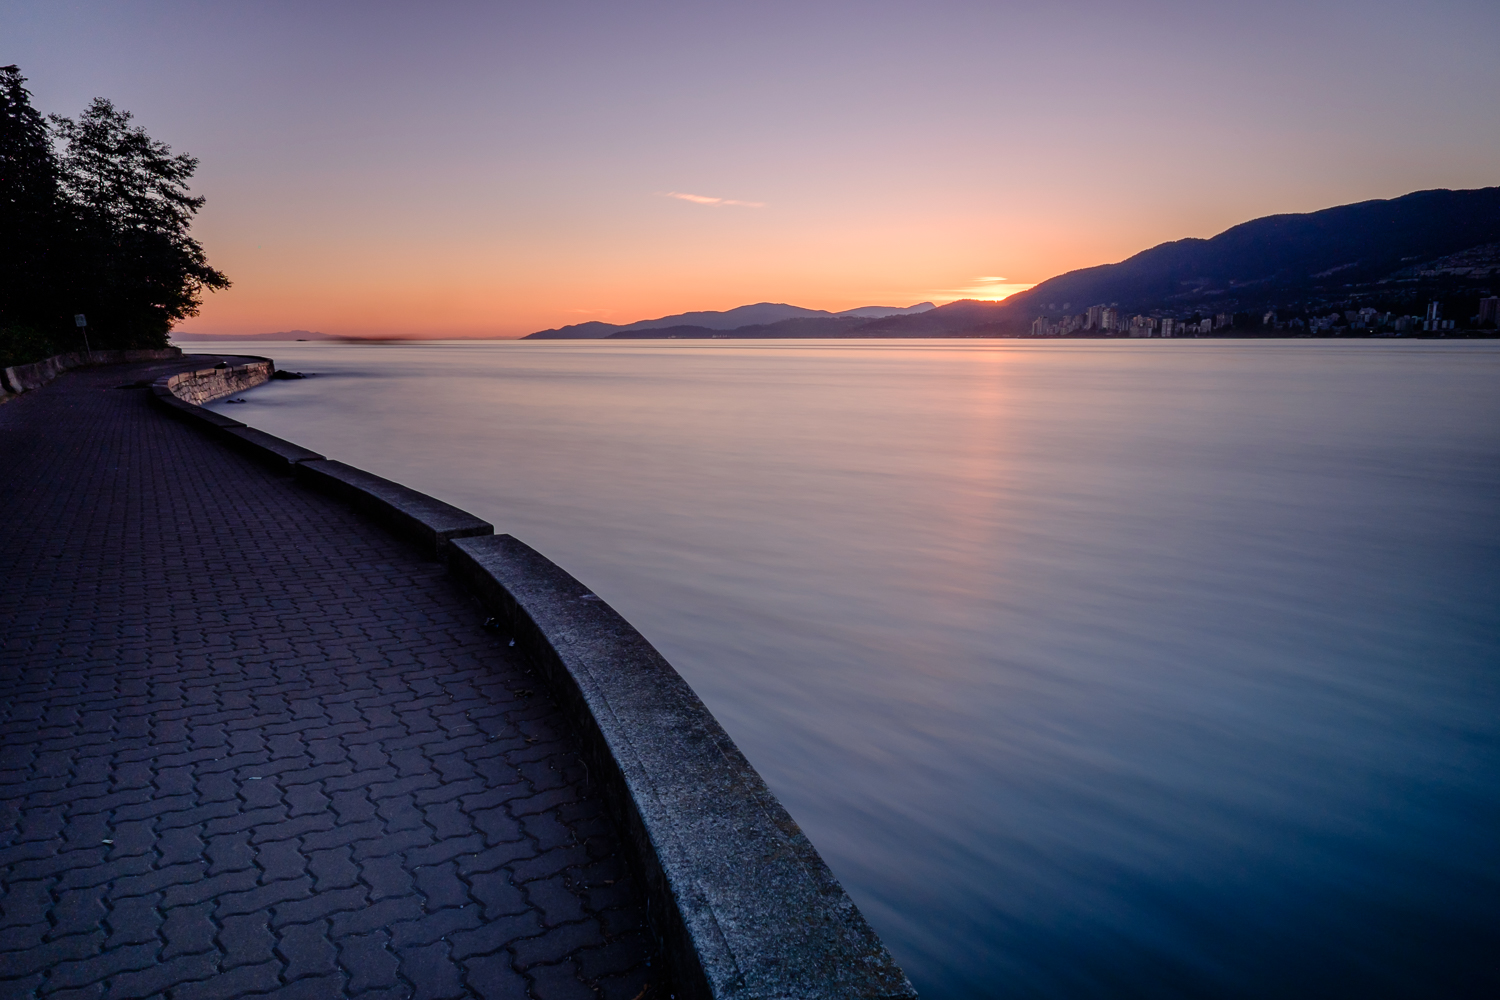 Stanley Park Seawall - 85 seconds at f/11